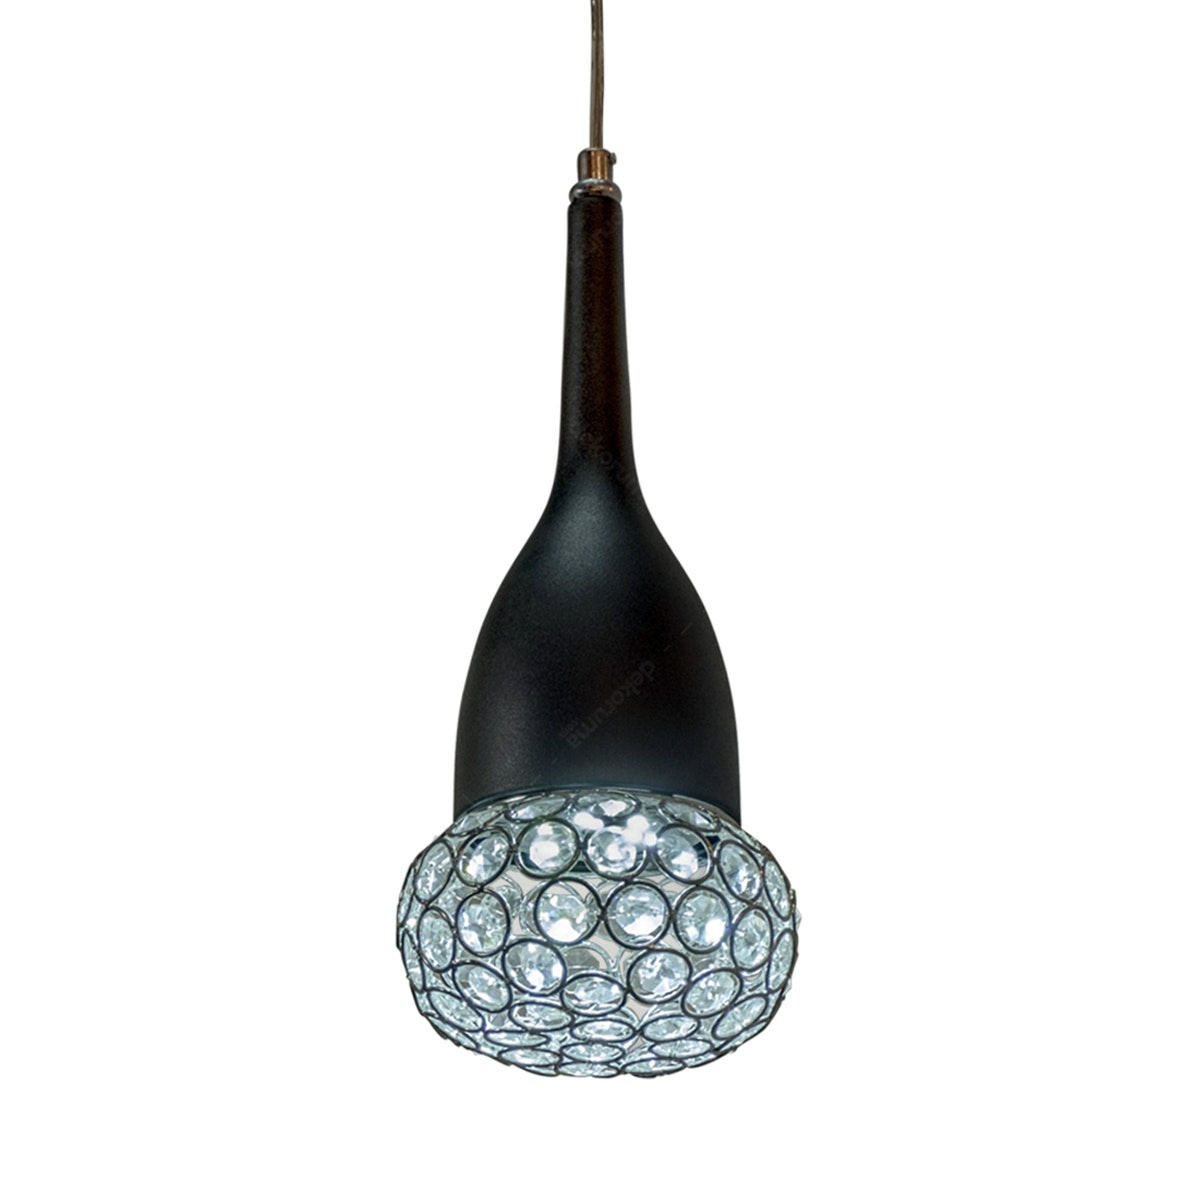 Lightology Chandelier / Lampu Gantung 550-3